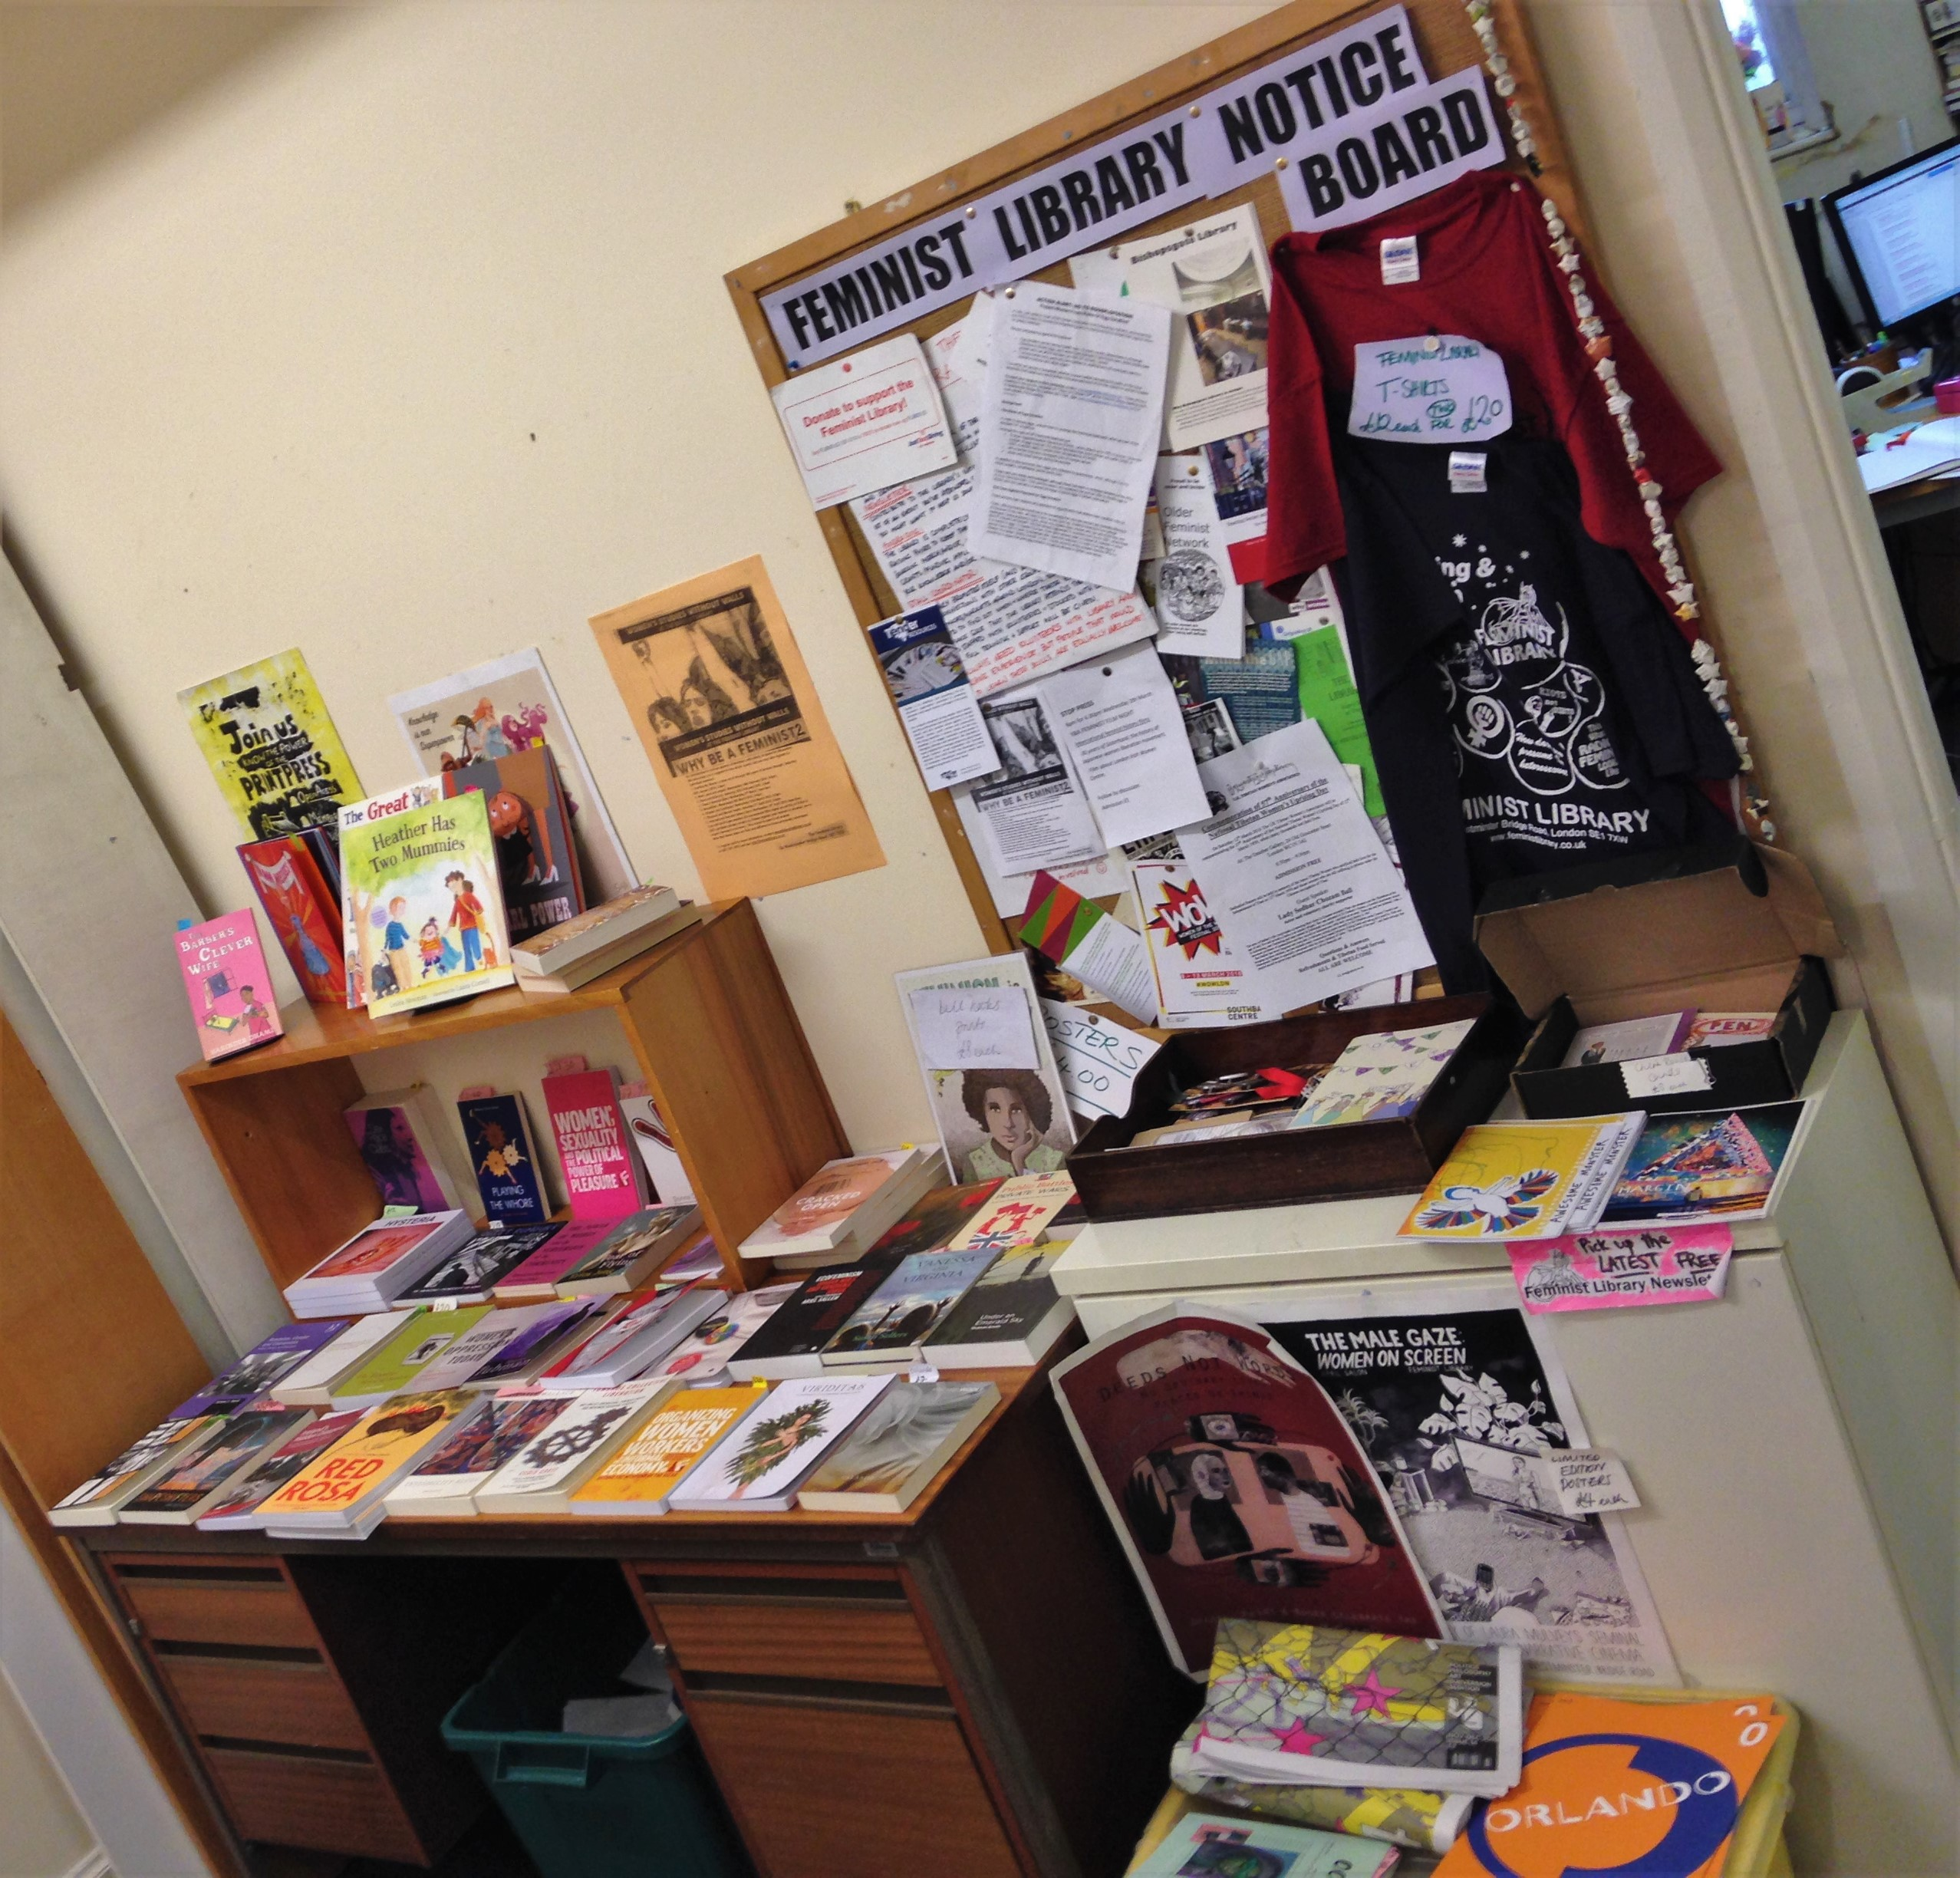 The Feminist Library - noticeboard and merch - kenningtonrunoff.com